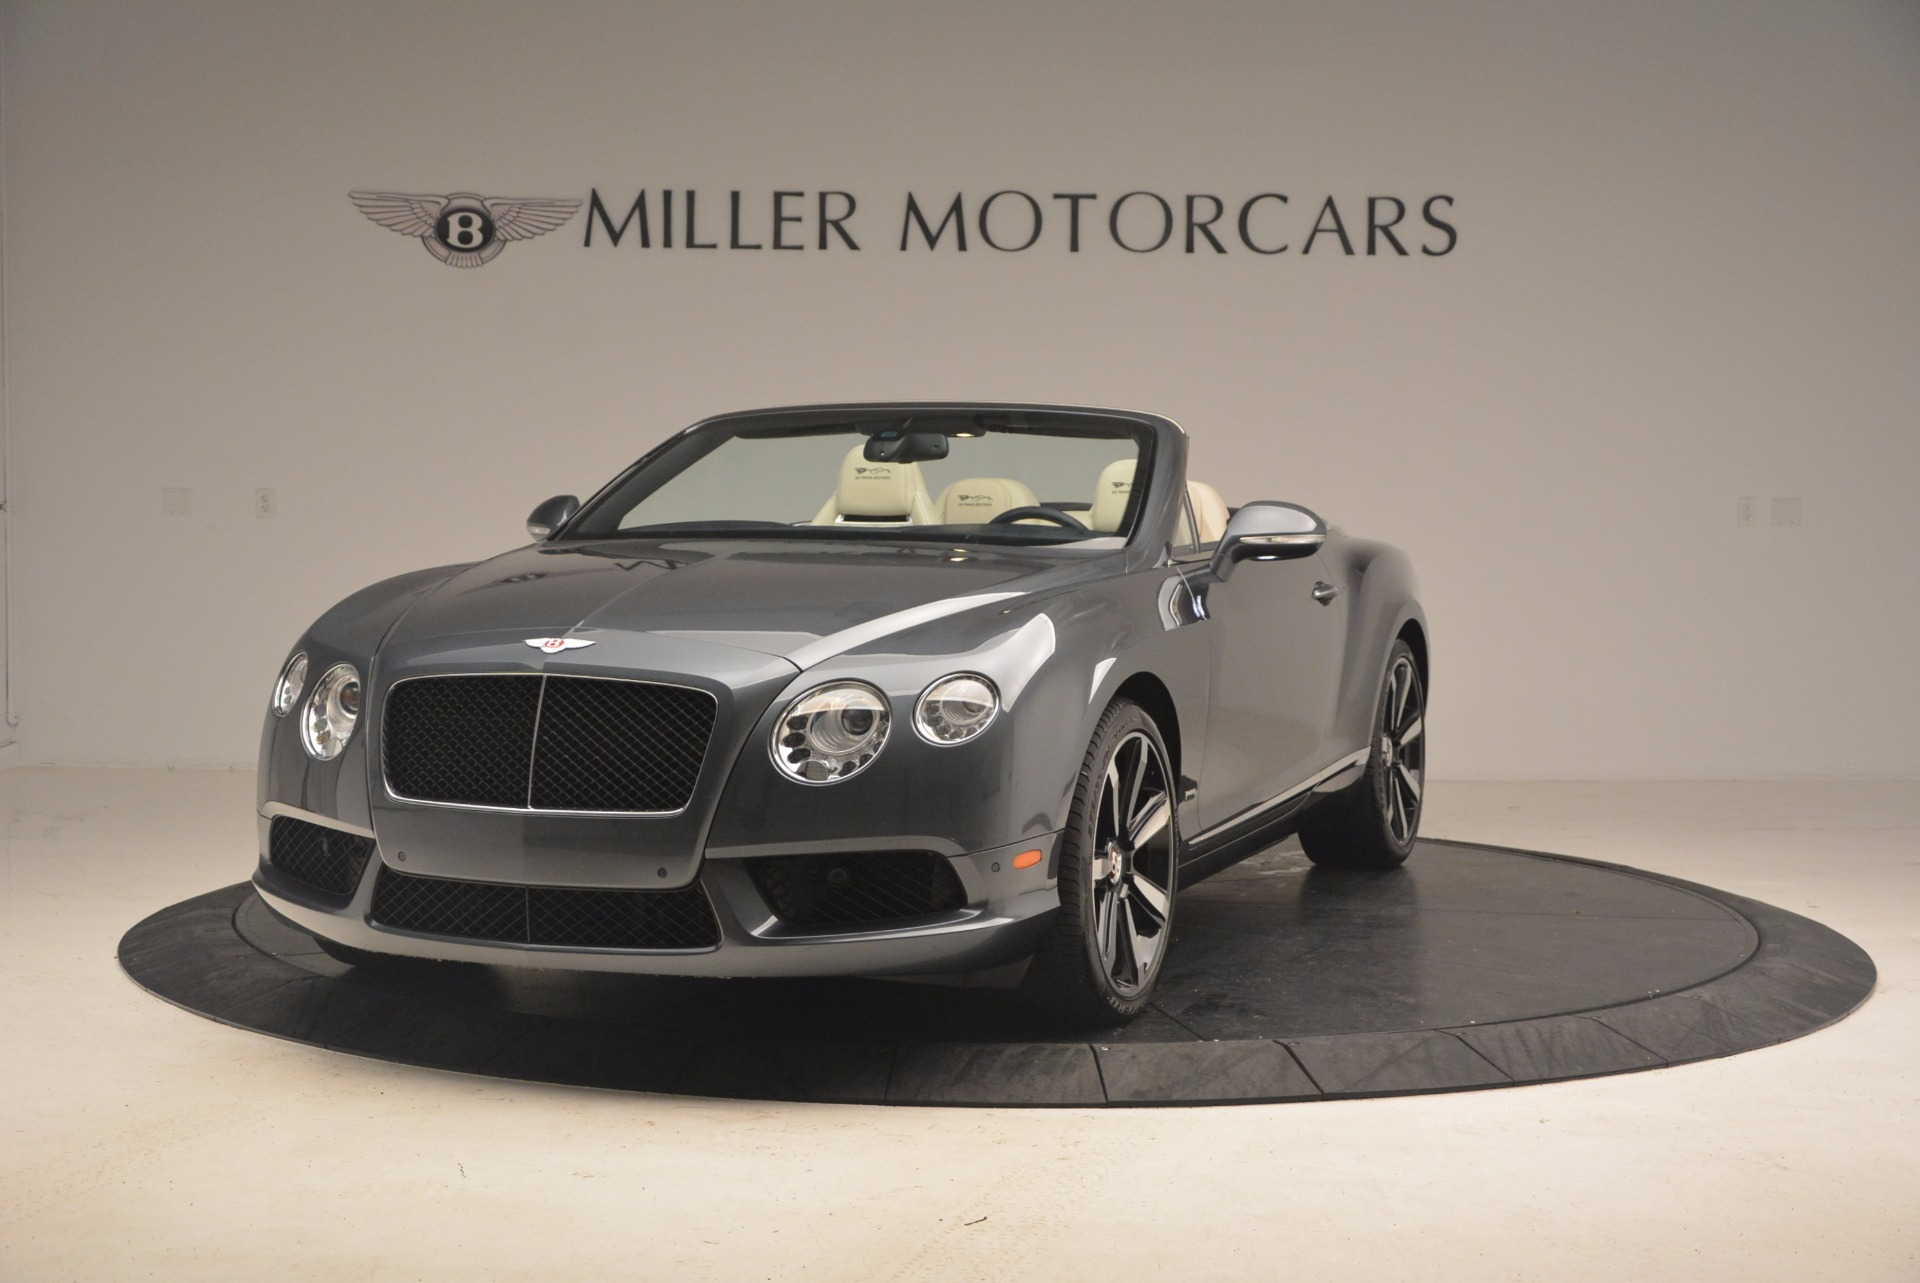 Used 2013 Bentley Continental GT V8 Le Mans Edition, 1 of 48 for sale Sold at Alfa Romeo of Westport in Westport CT 06880 1